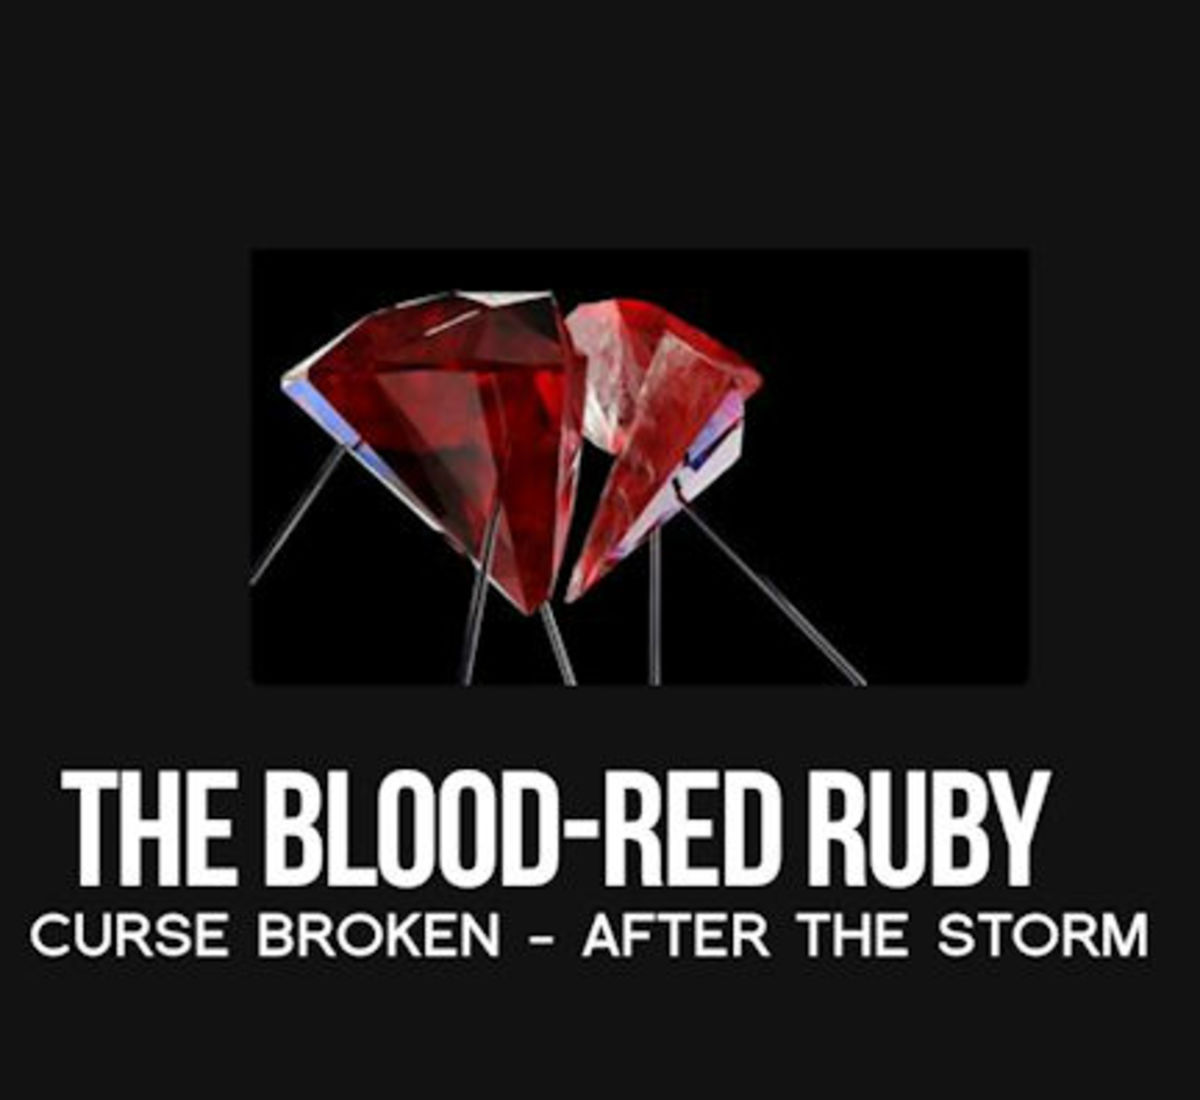 The Blood-Red Ruby: After the Storm 13